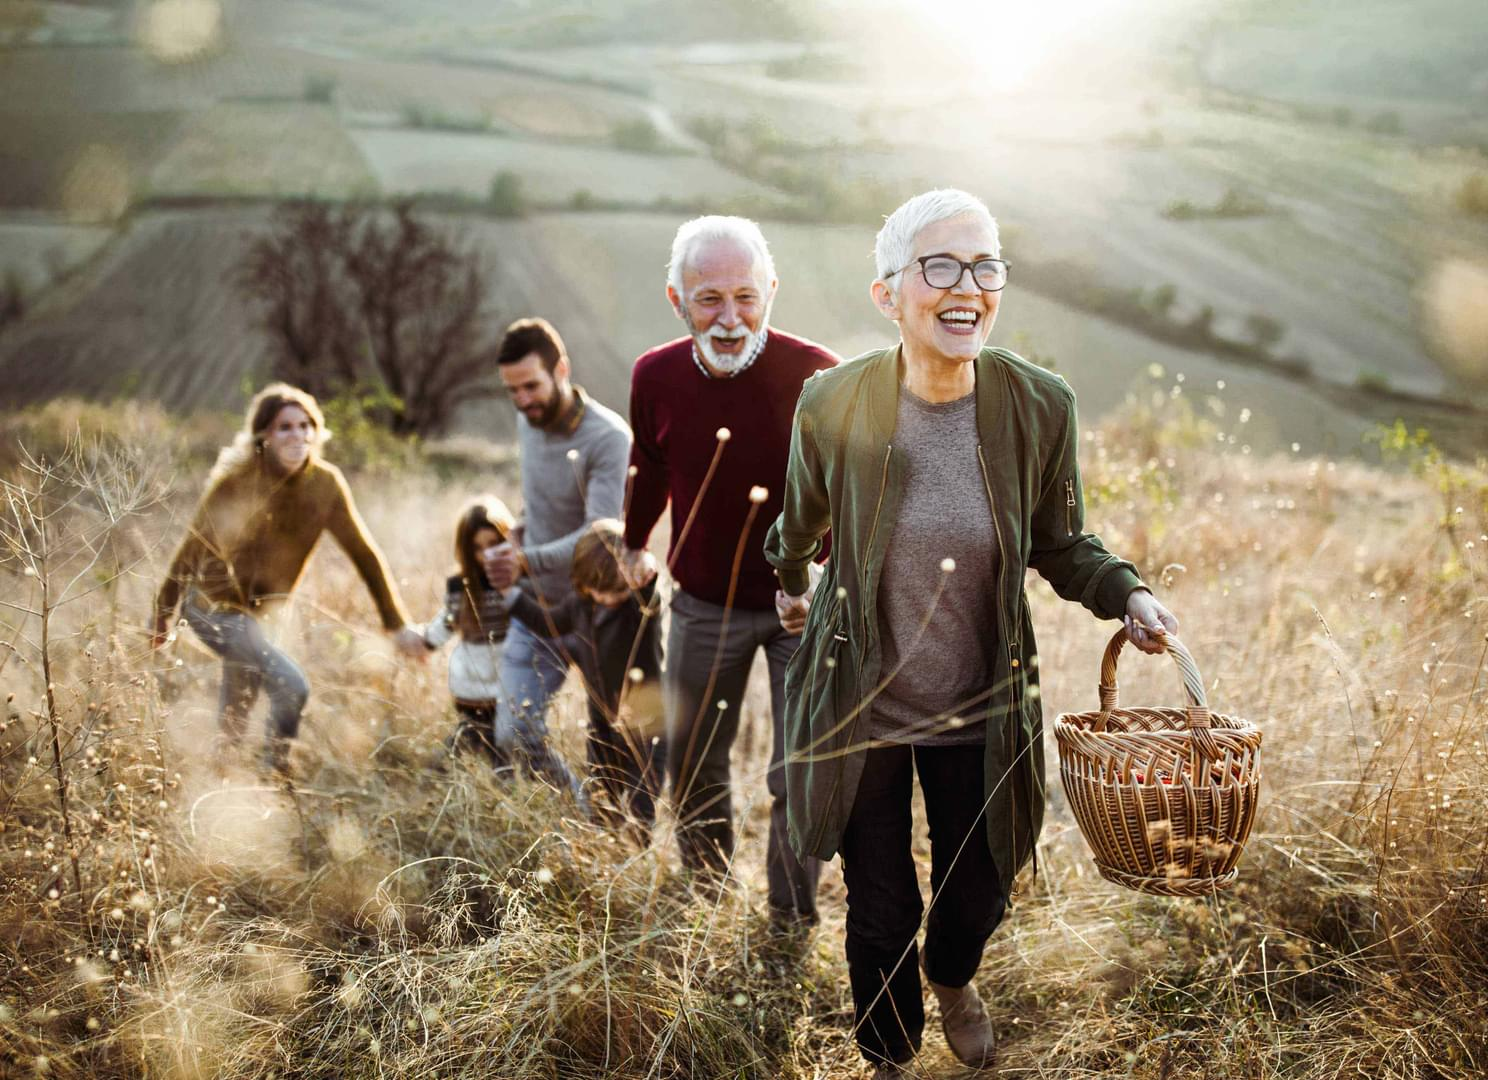 An older couple is hiking on a hillside along with their son and his family.